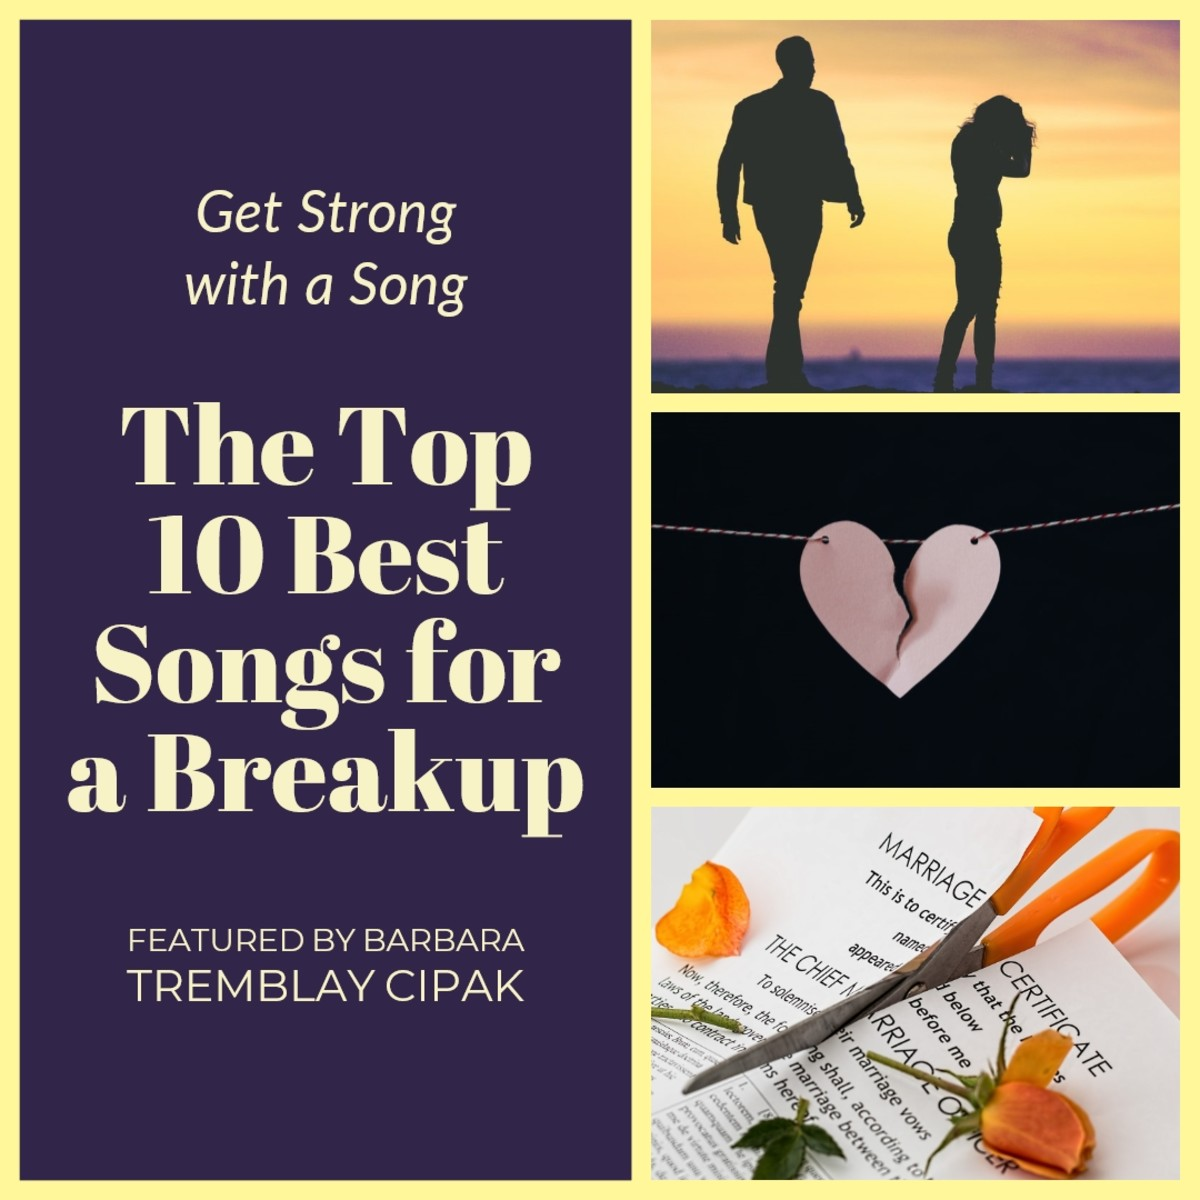 Top 10 Best Songs for a Breakup